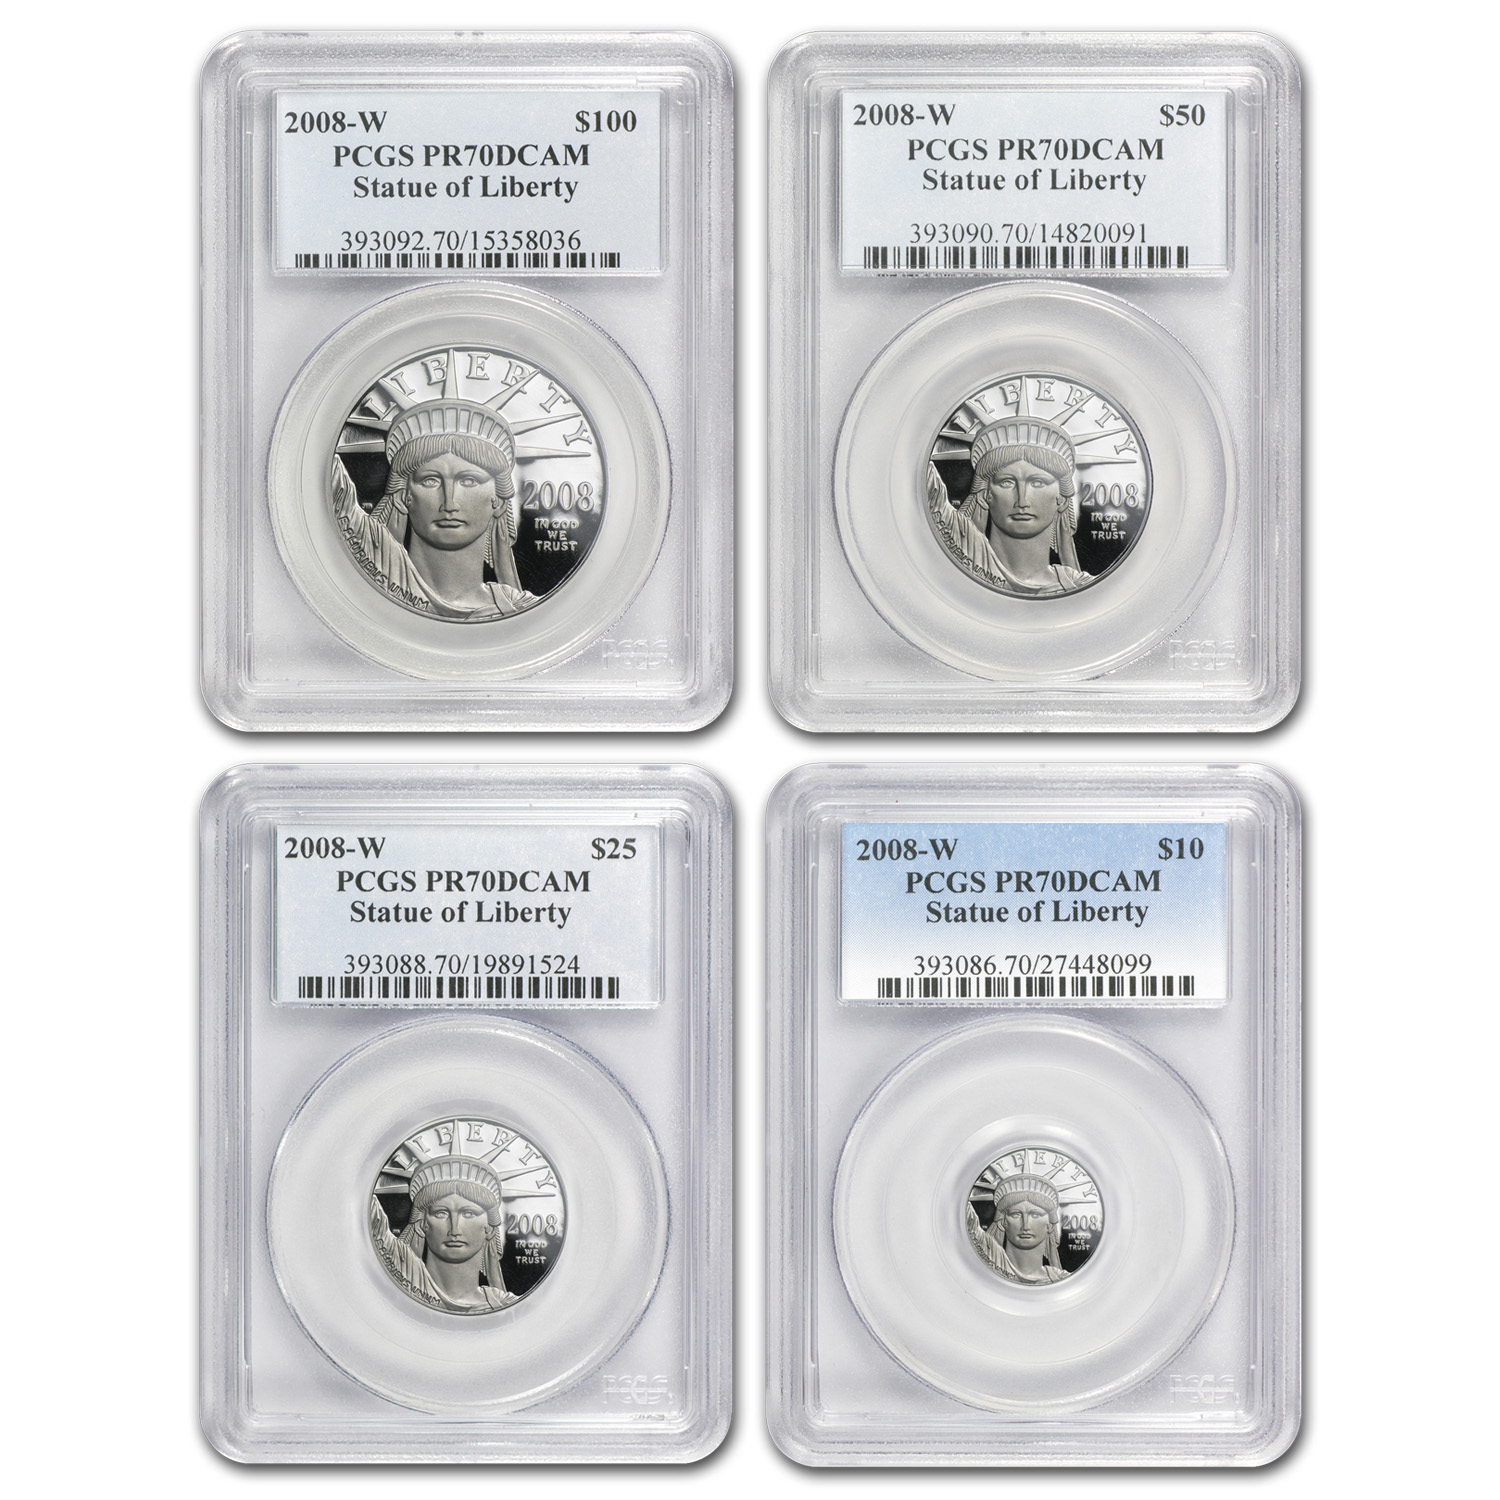 2008-W 4-Coin Proof Platinum American Eagle Set PR-70 PCGS